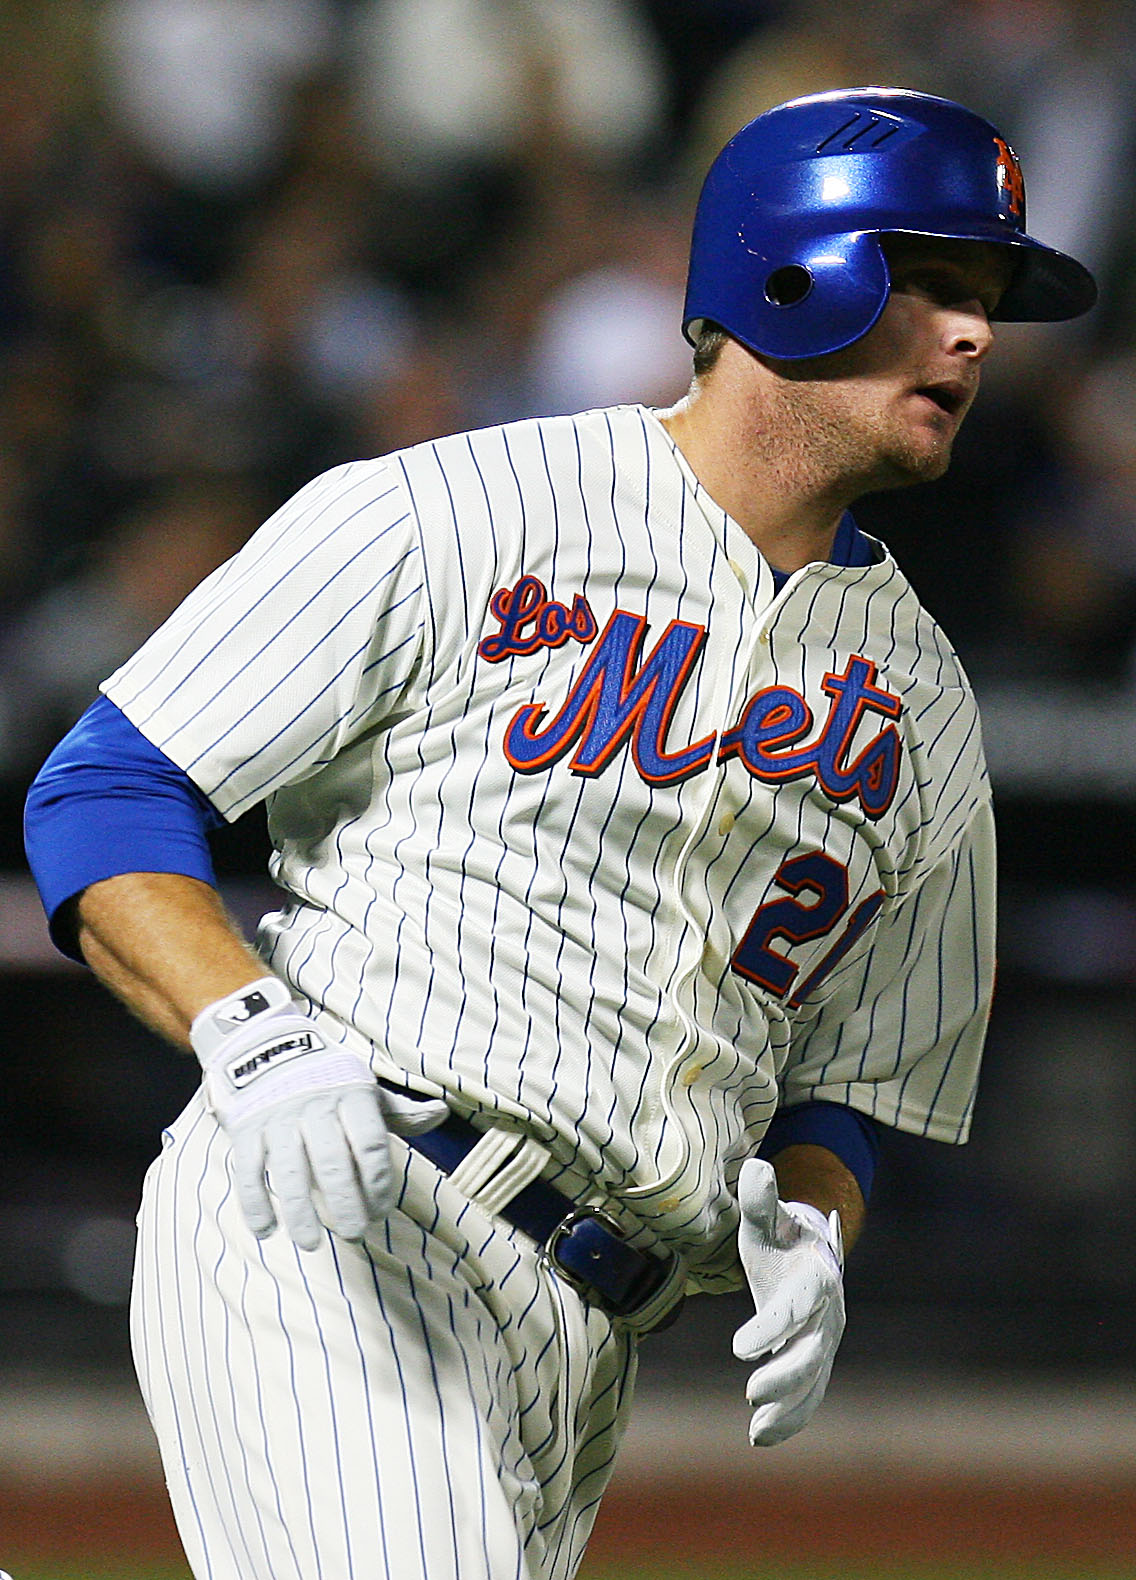 NEW YORK - SEPTEMBER 17: Josh Thole #21 of the New York Mets runs the bases after hitting his first ever Major League Baseball home run in the fourth inning against the Atlanta Braves on September 17, 2010 at Citi Field in the Flushing neighborhood of the